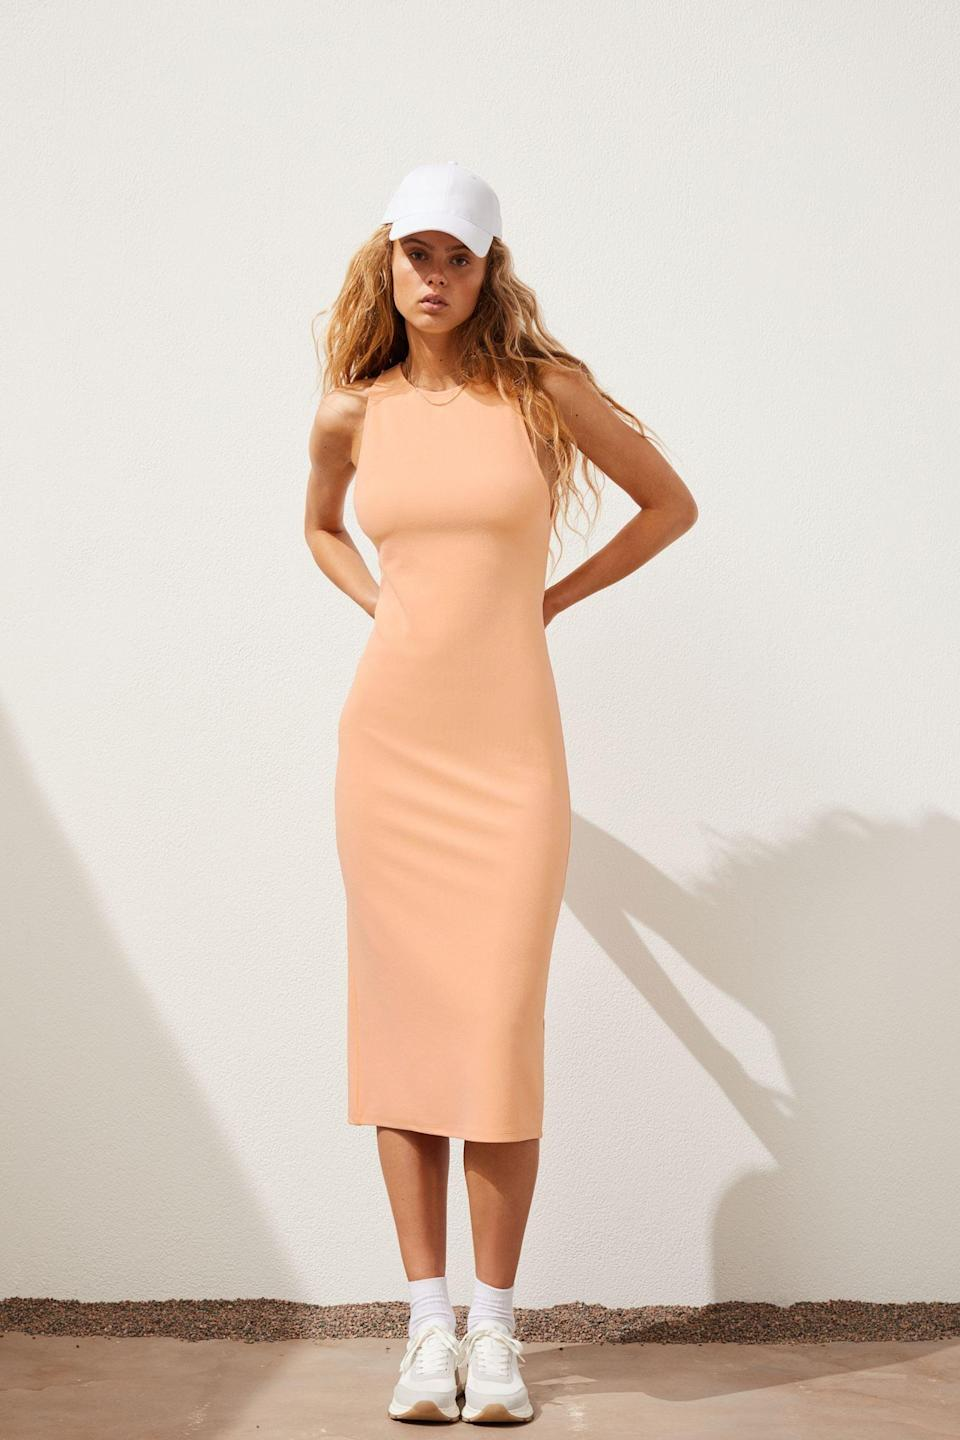 <p>Running errands? Pair this <span>Sleeveless Dress</span> ($36, originally $40) with a baseball cap and chunky dad sneakers. Going to brunch? Replace the sneakers with some kitten heels, and the hat with a polished headband, and you'll be good to go.</p>